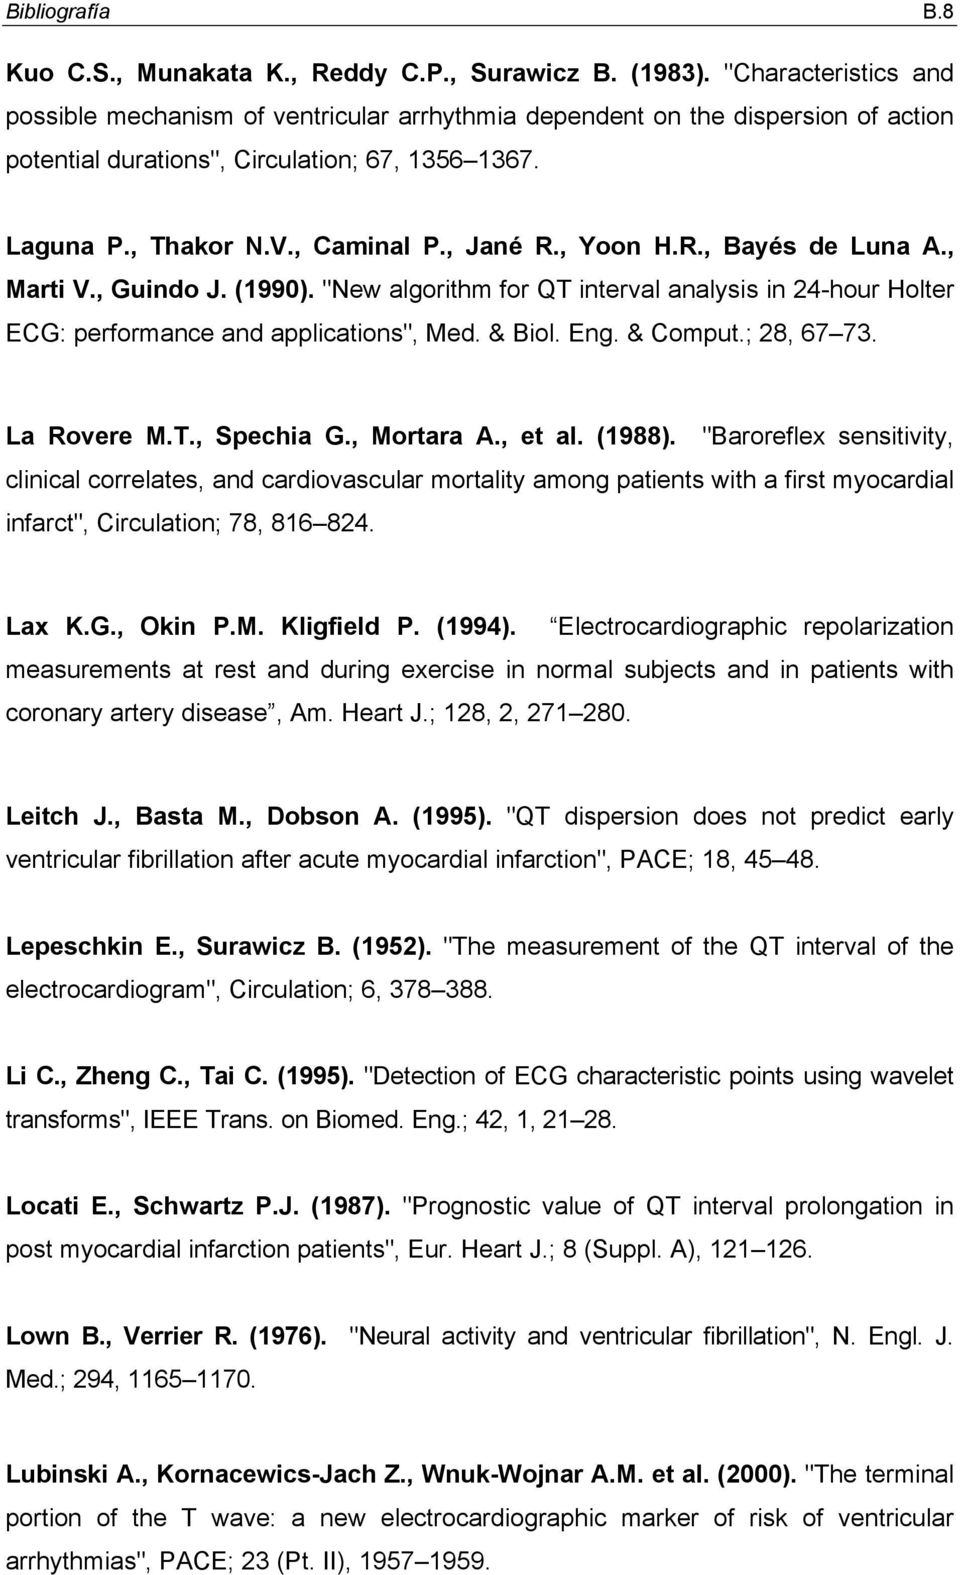 ", Yoon H.R., Bayés de Luna A., Marti V., Guindo J. (1990). ""New algorithm for QT interval analysis in 24-hour Holter ECG: performance and applications"", Med. & Biol. Eng. & Comput.; 28, 67 73."